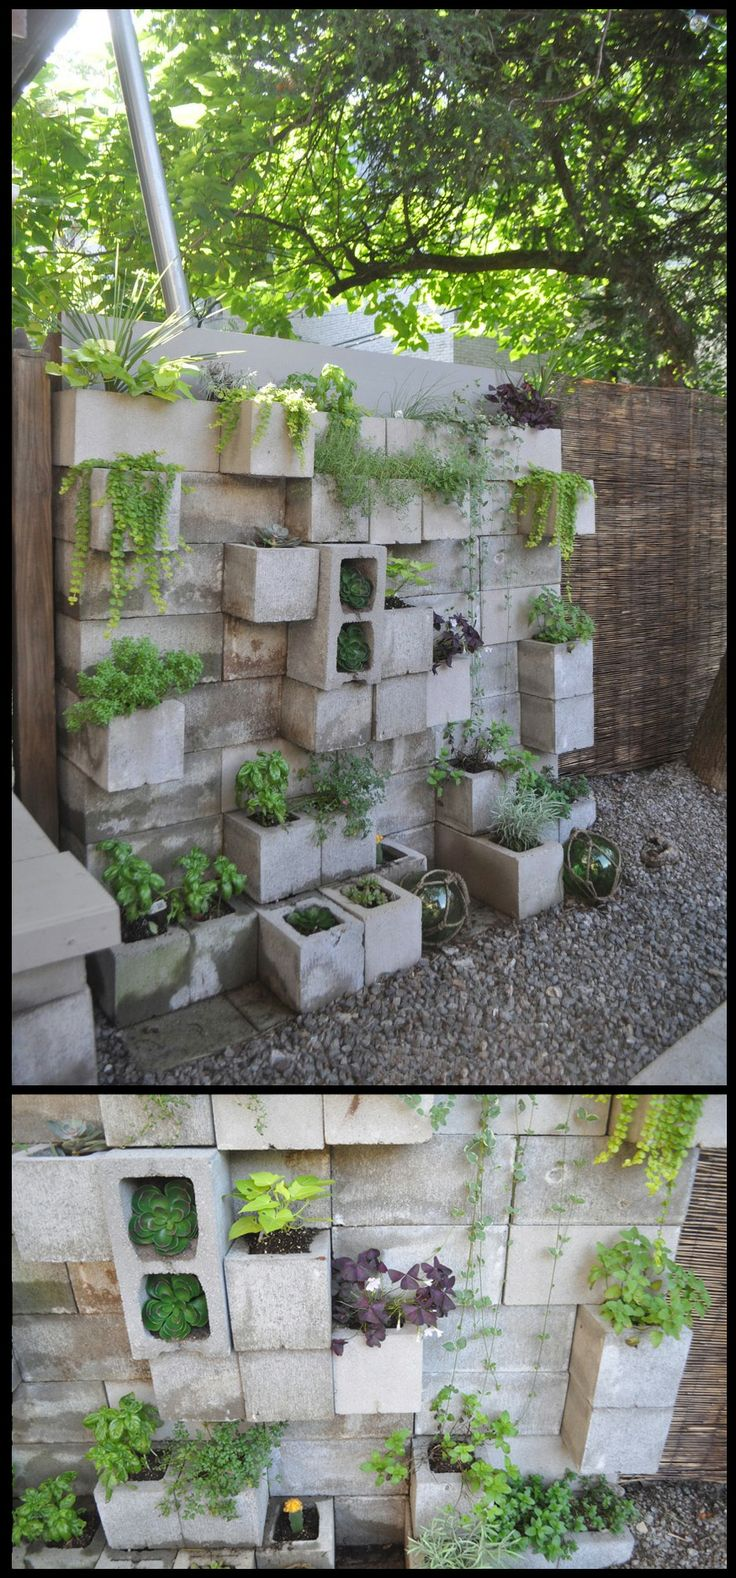 16 best retaining walls yes retaining walls images on pinterest retaining walls insect - Cinder block garden uses ...